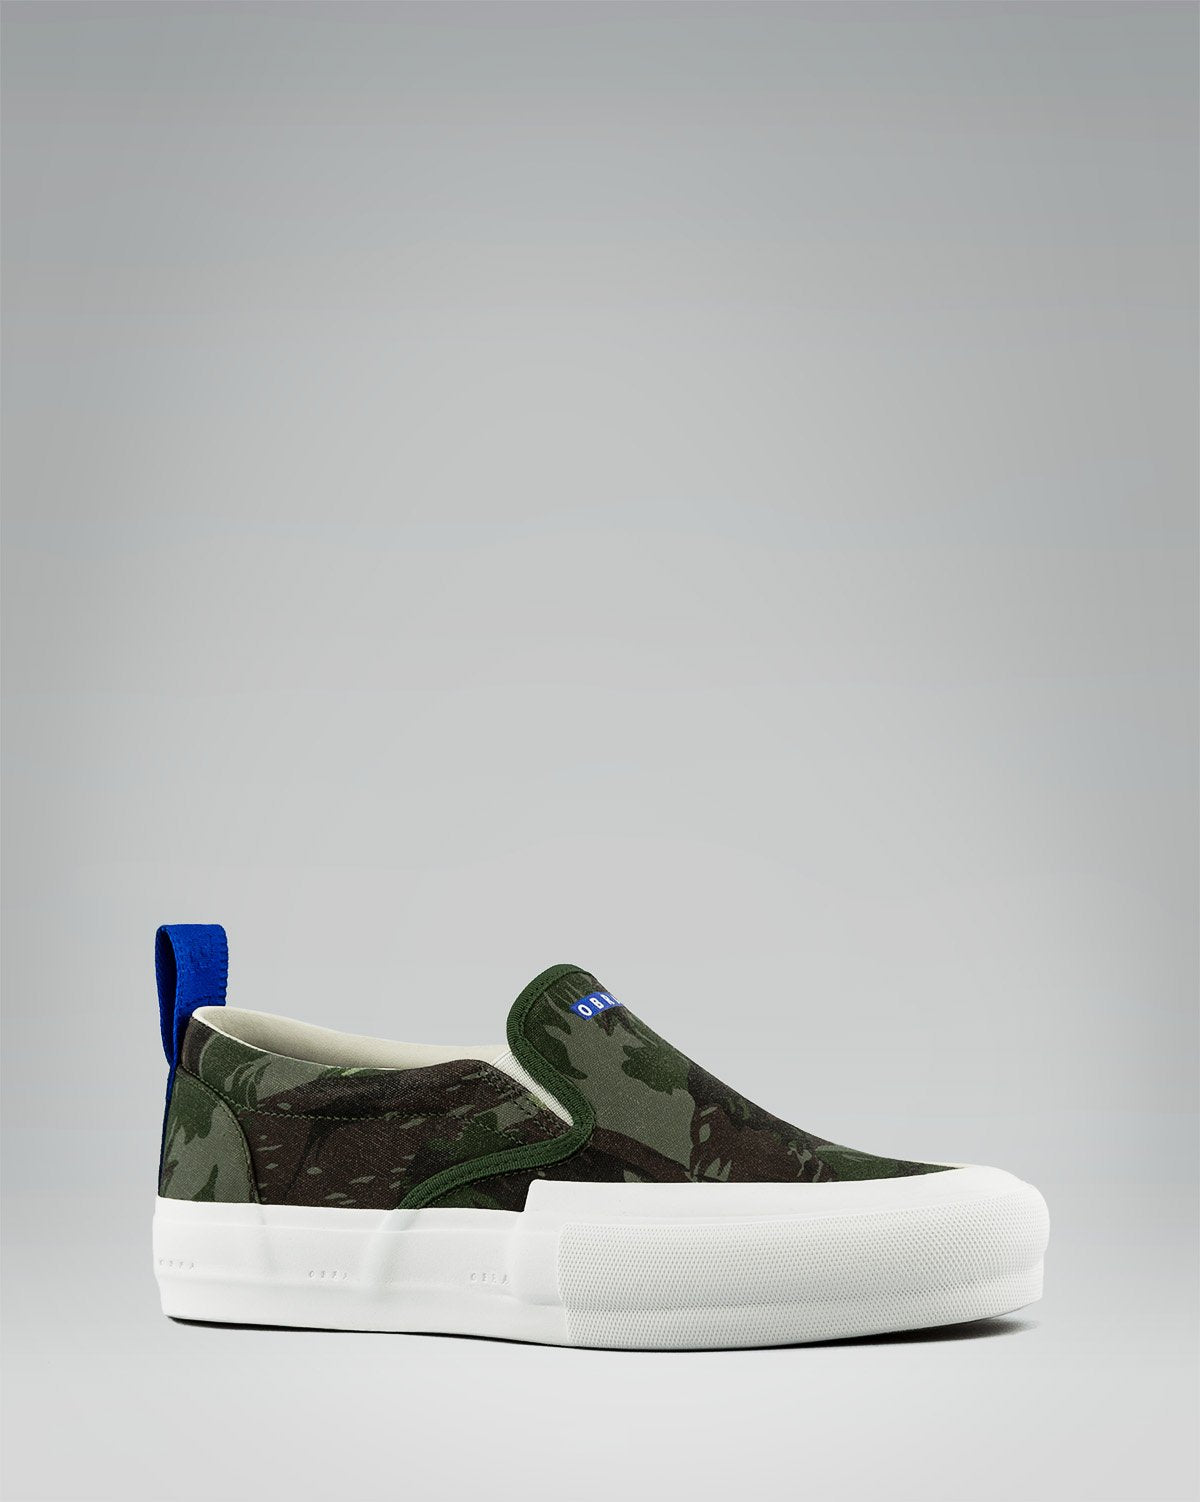 240 CANVAS SLIP-ON WRAP TOE<br />Exercito/White/OBRA Blue